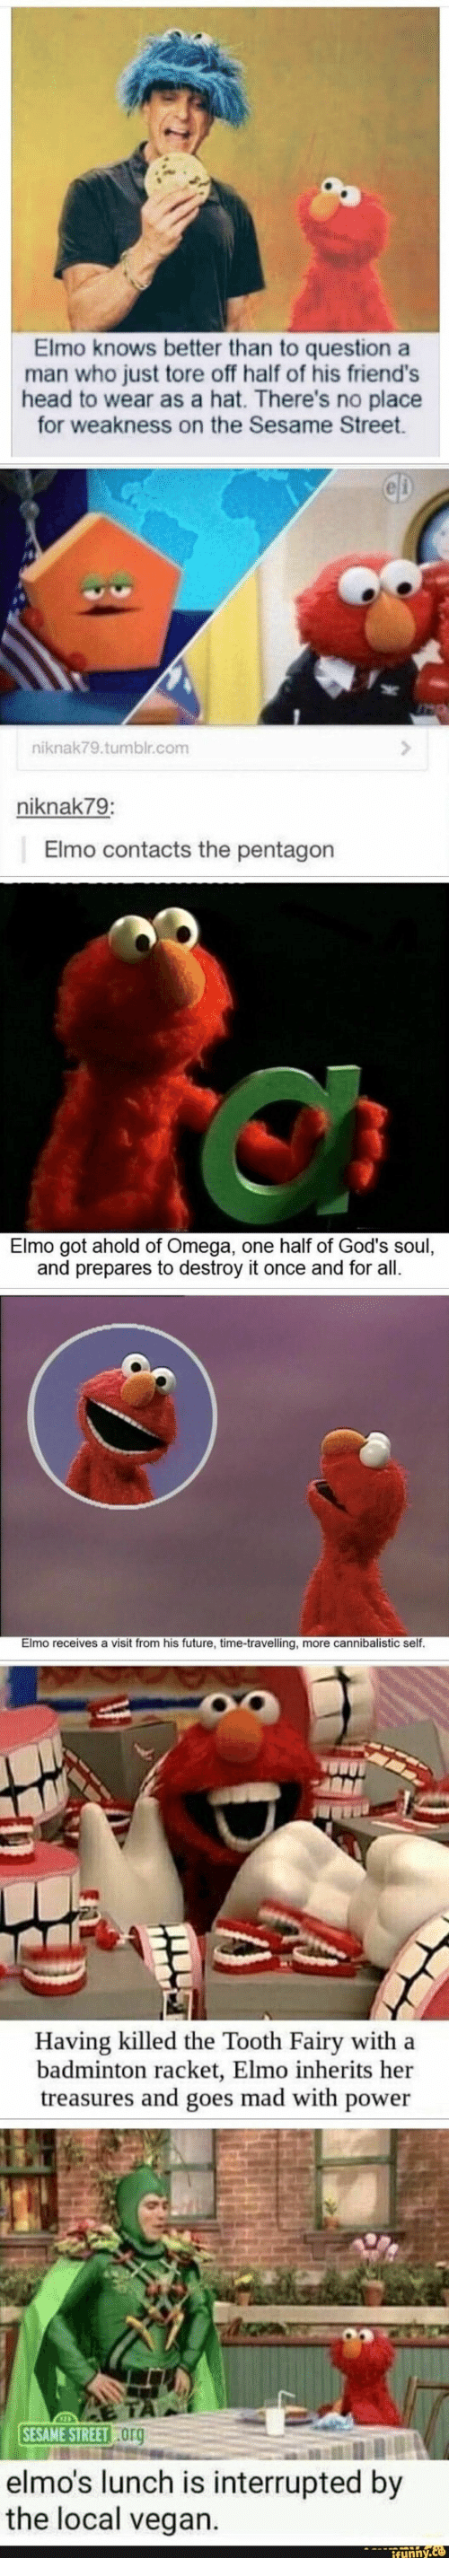 Elmo, Friends, and Future: Elmo knows better than to question a  man who just tore off half of his friend's  head to wear as a hat. There's no place  for weakness on the Sesame Street  CD  niknak79.tumblr.com  niknak79:  Elmo contacts the pentagon  Elmo got ahold of Omega, one half of God's soul,  and prepares to destroy it once and for all.  Elmo receives a visit from his future, time-travelling, more cannibalistic self.  Having killed the Tooth Fairy with a  badminton racket, Elmo inherits her  treasures and goes mad with power  SESAME STREET Org  elmo's lunch is interrupted by  the local vegan.  ifynny.co